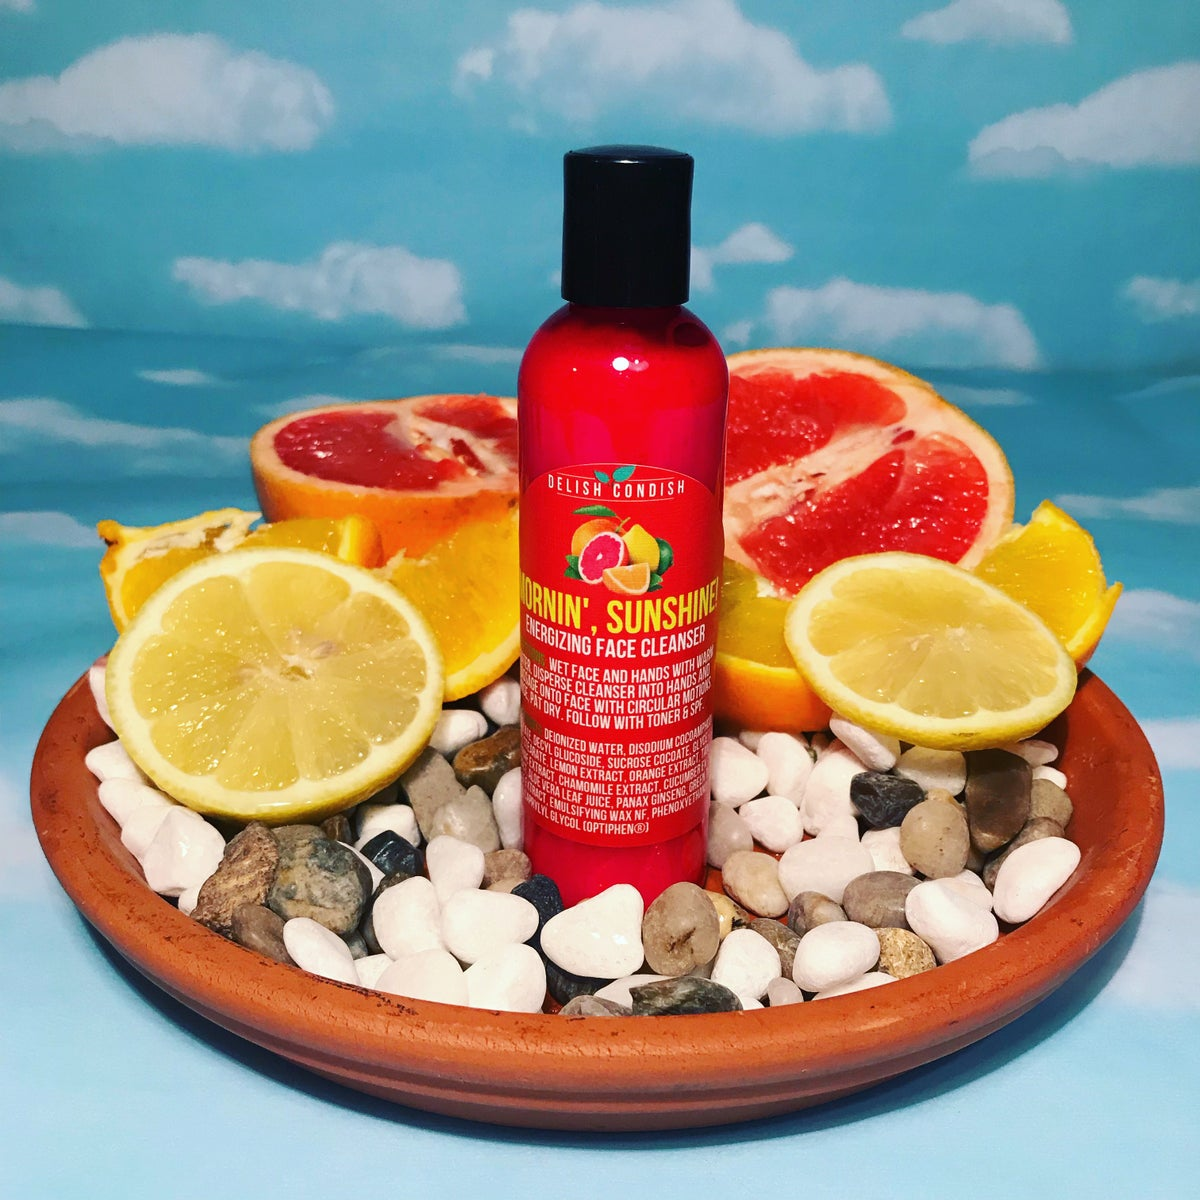 Image of Mornin', Sunshine! Energizing Face Cleanser